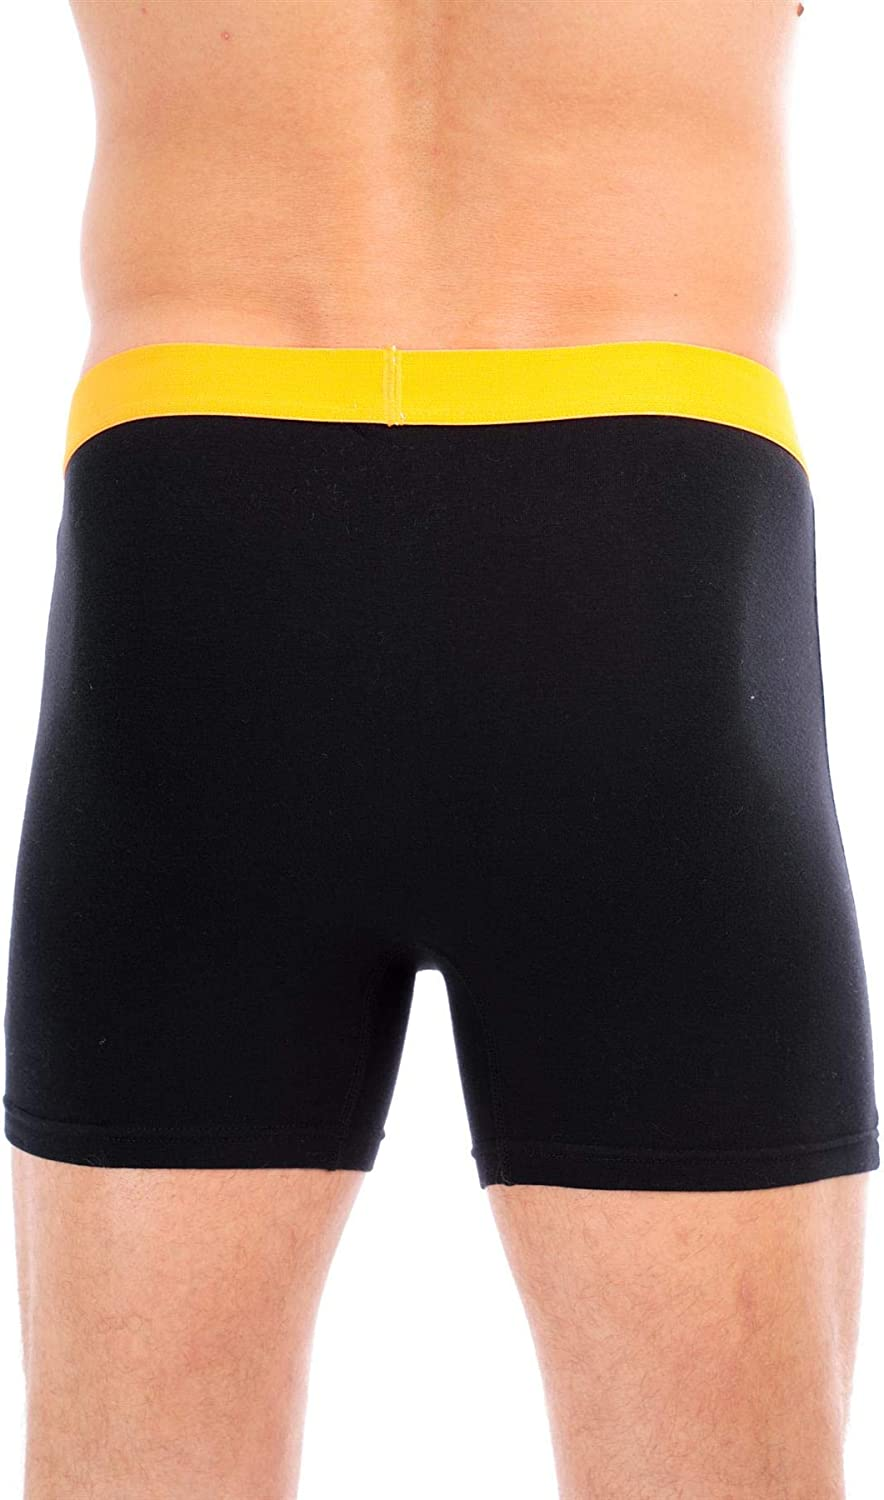 Sock Stack Boxer Shorts Mens Organic Cotton Boxershorts Comfort Fit Black Button Free Boxers Trunks Underwear Pack of 5